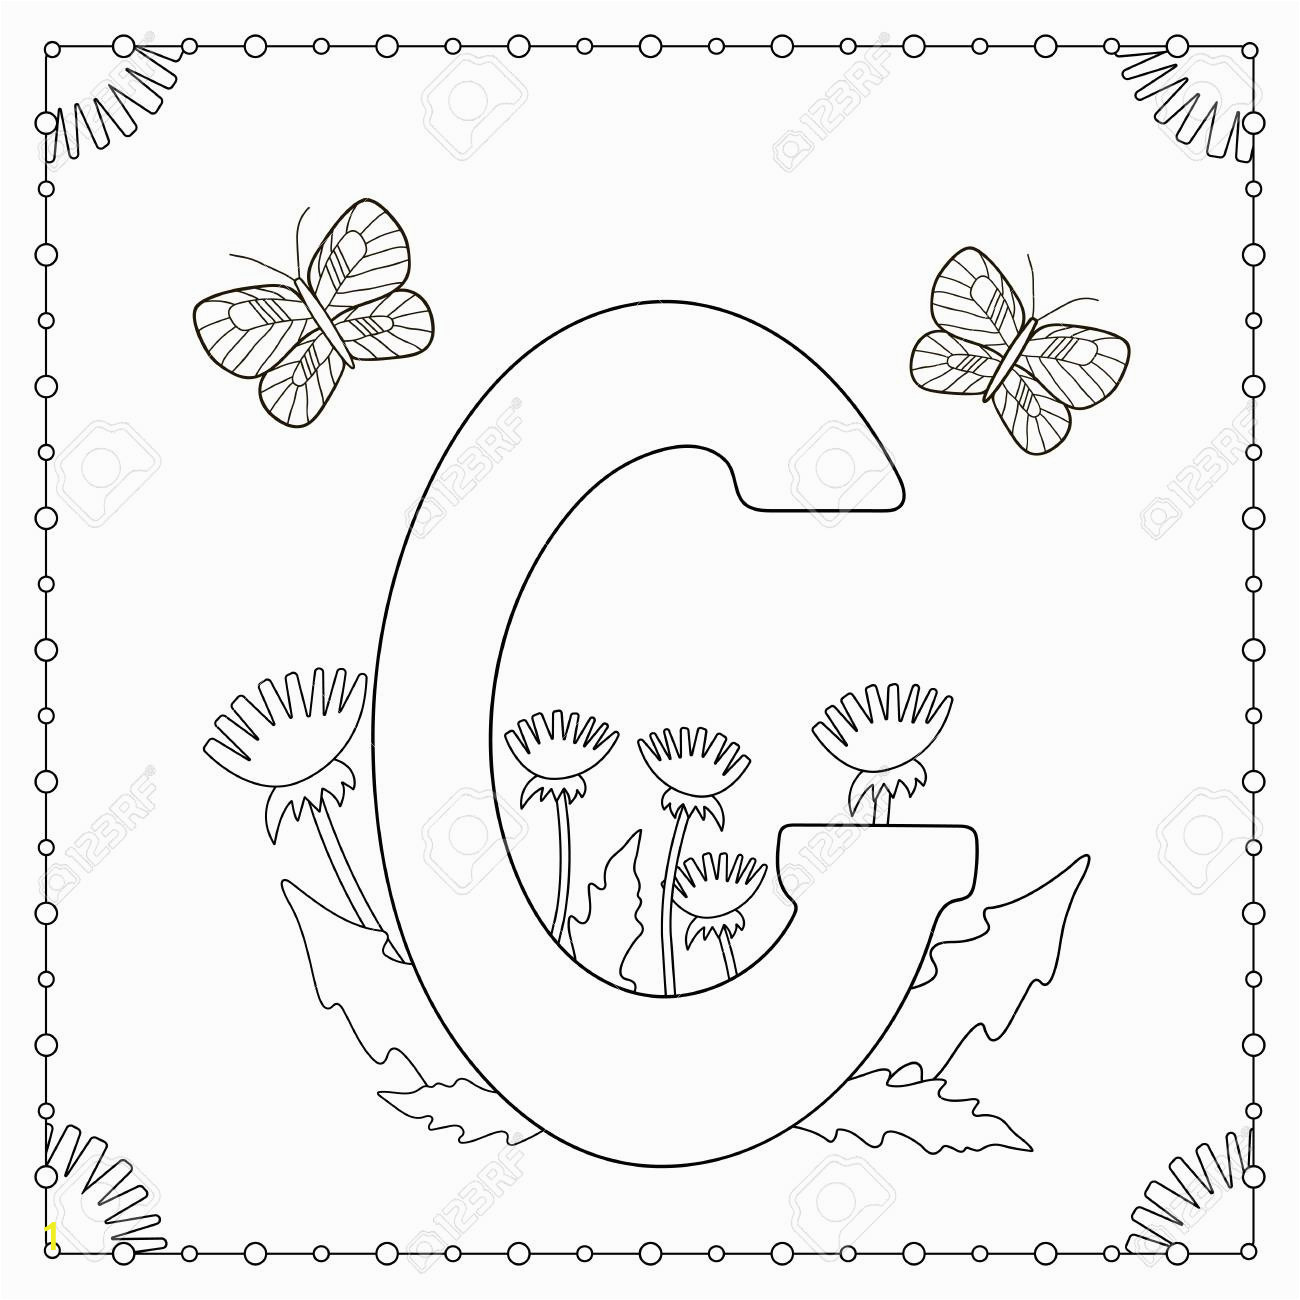 alphabet coloring page capital letter g with flowers leaves and butterflies vector illustration